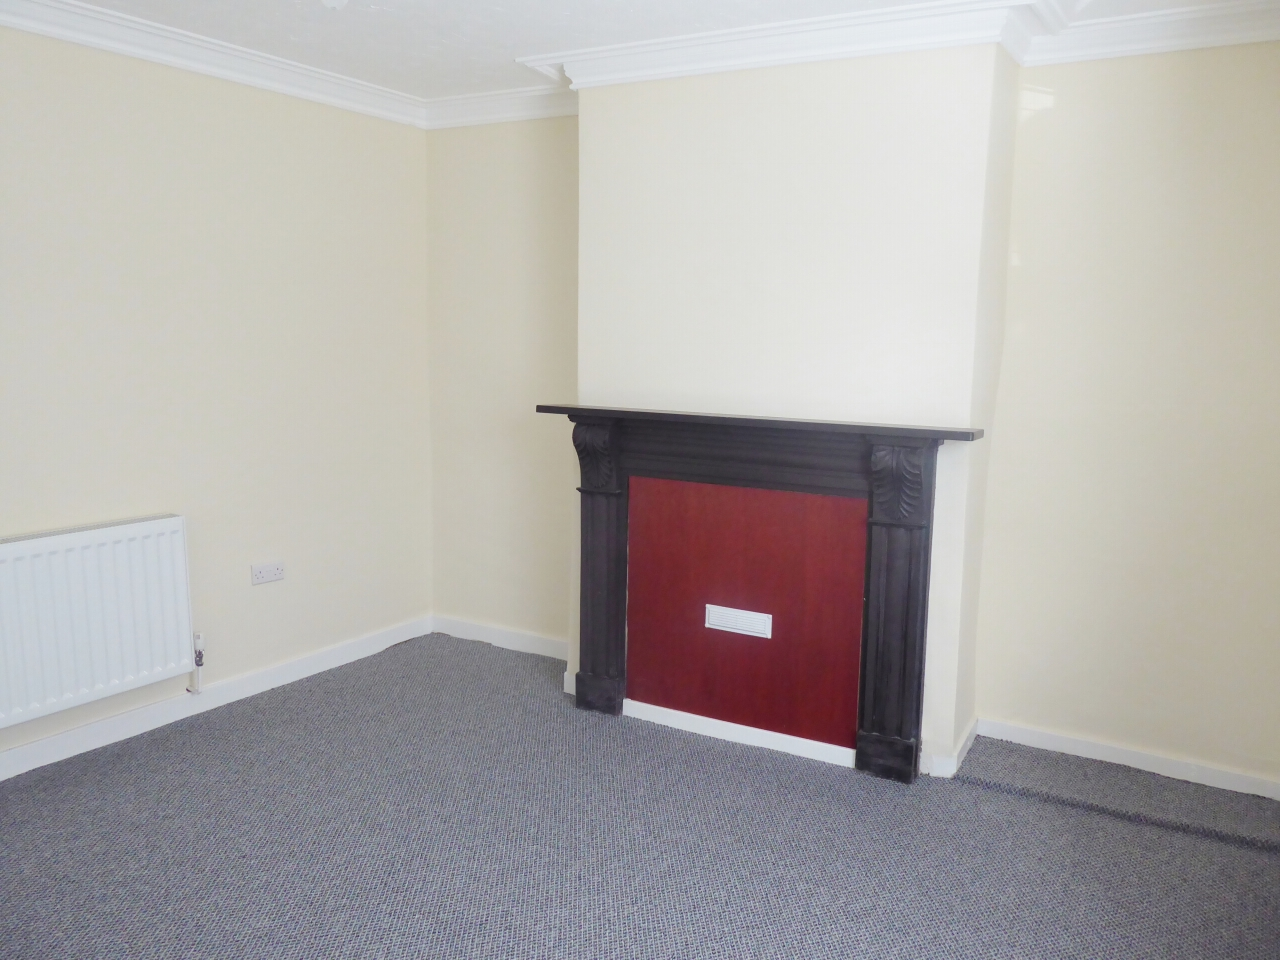 2 bedroom end terraced house For Sale in Abergele - Photograph 3